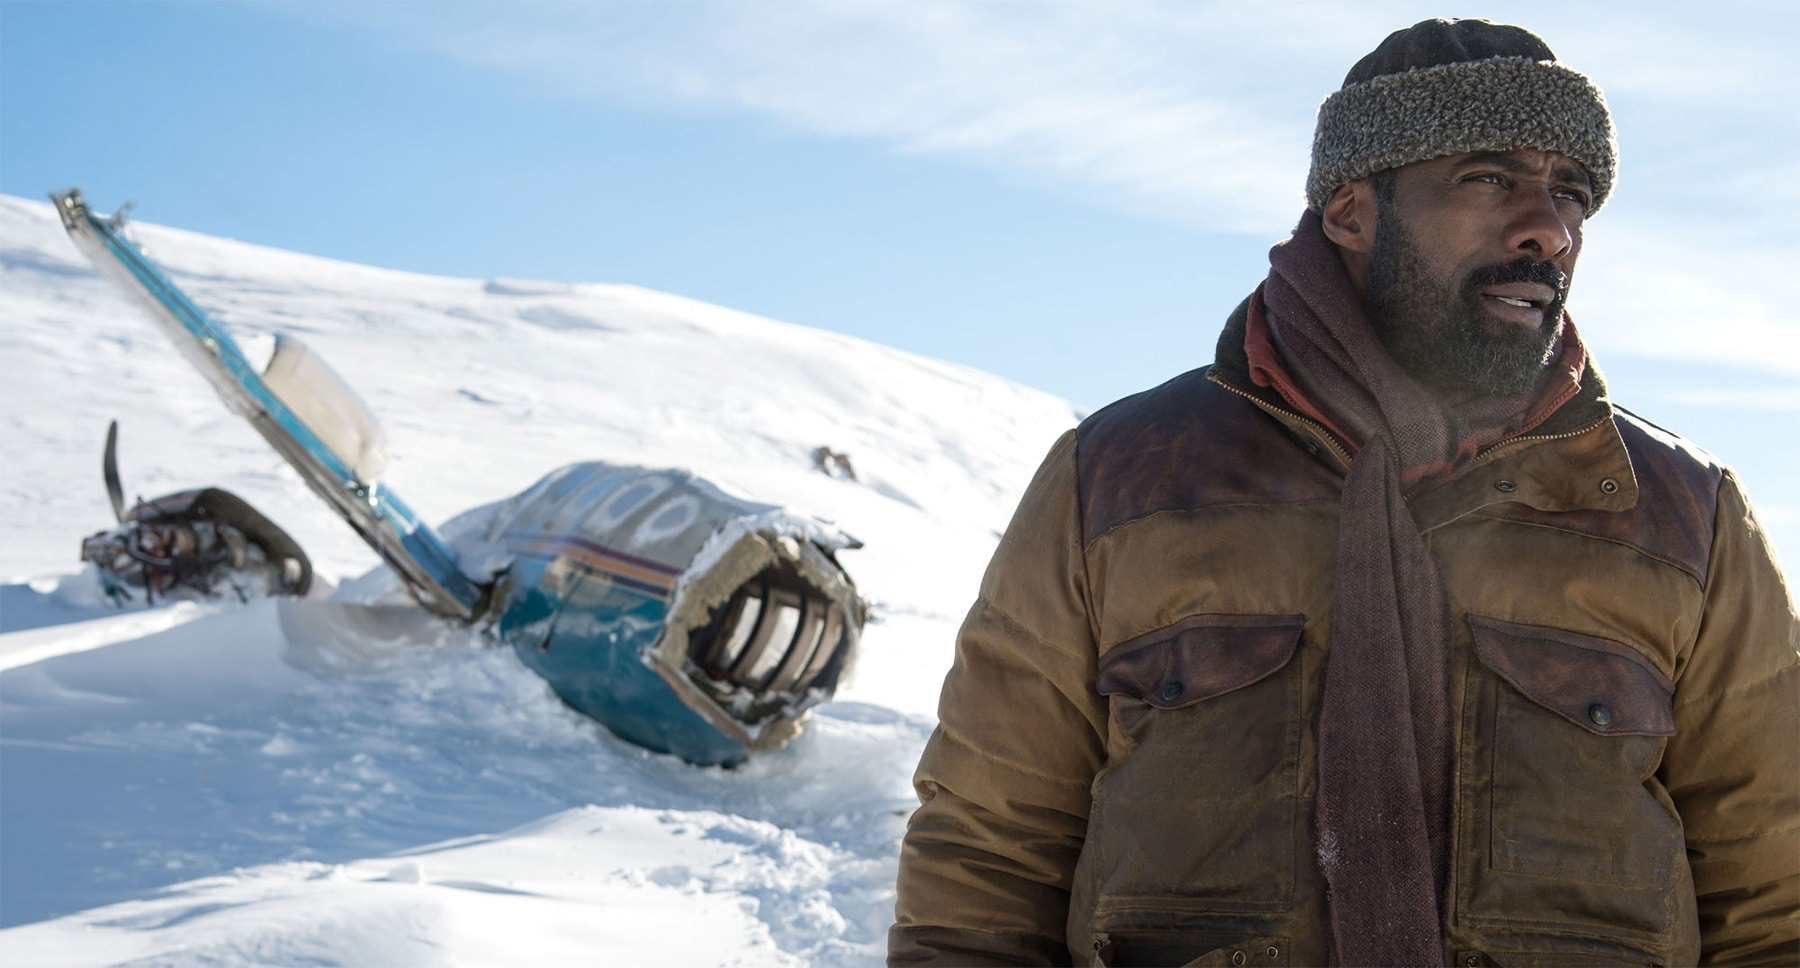 "Idris Elba (as Ben Bass) near plane wreckage on a snowy mountain in the movie ""The Mountain Between Us"""